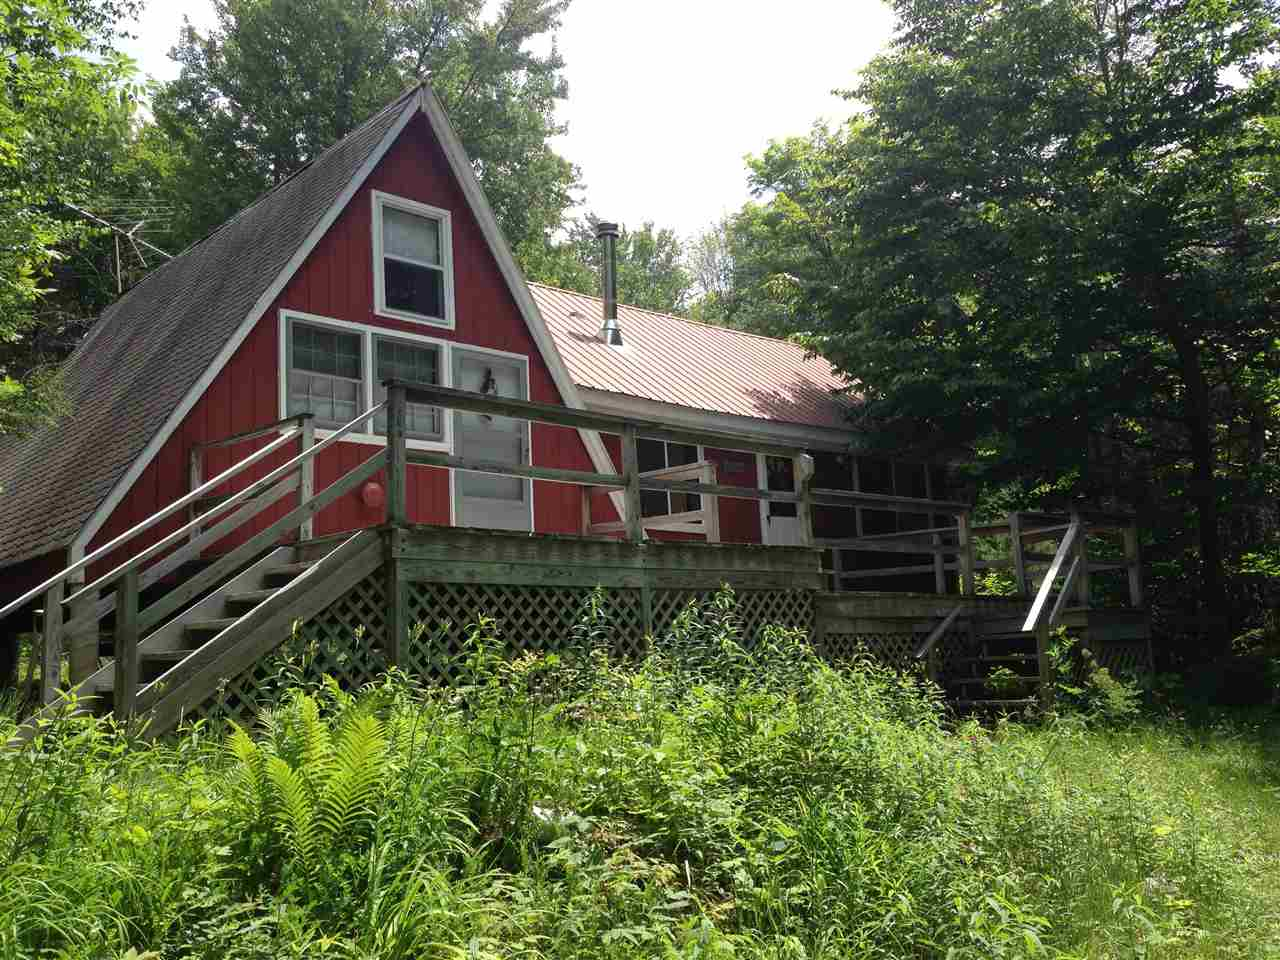 READING VT Homes for sale